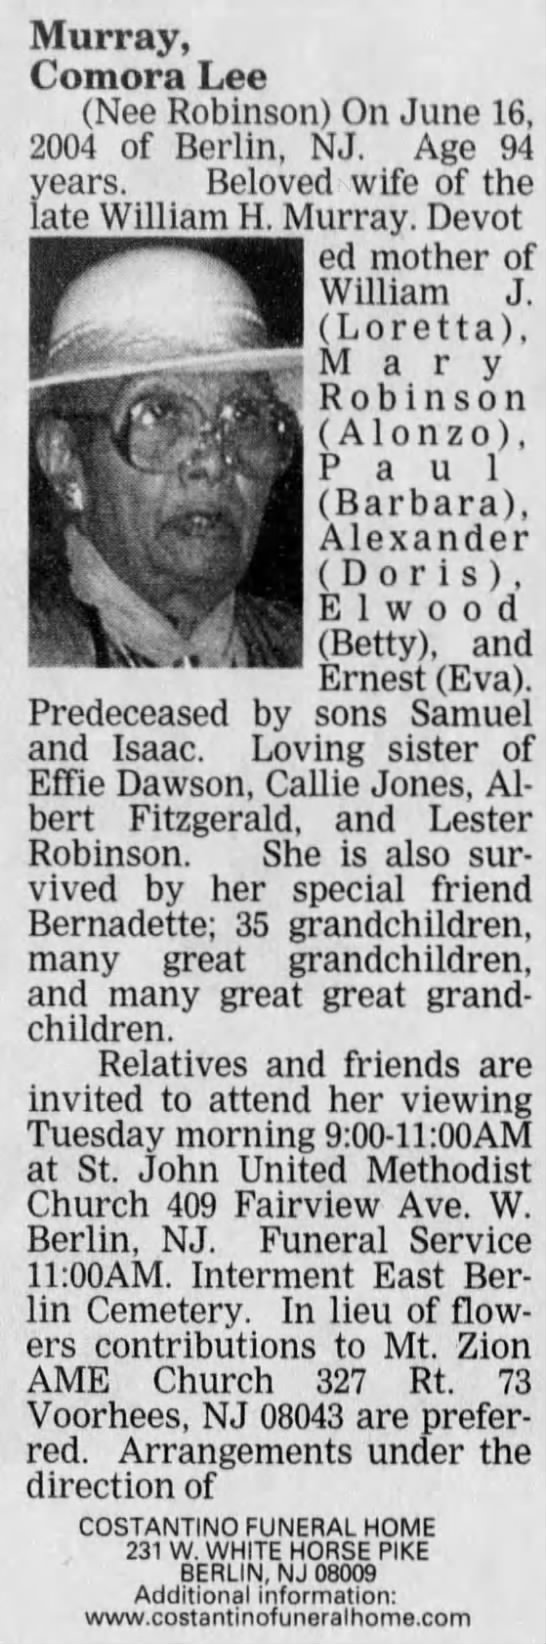 Comora Lee Robinson's obit 20 Jun 2004